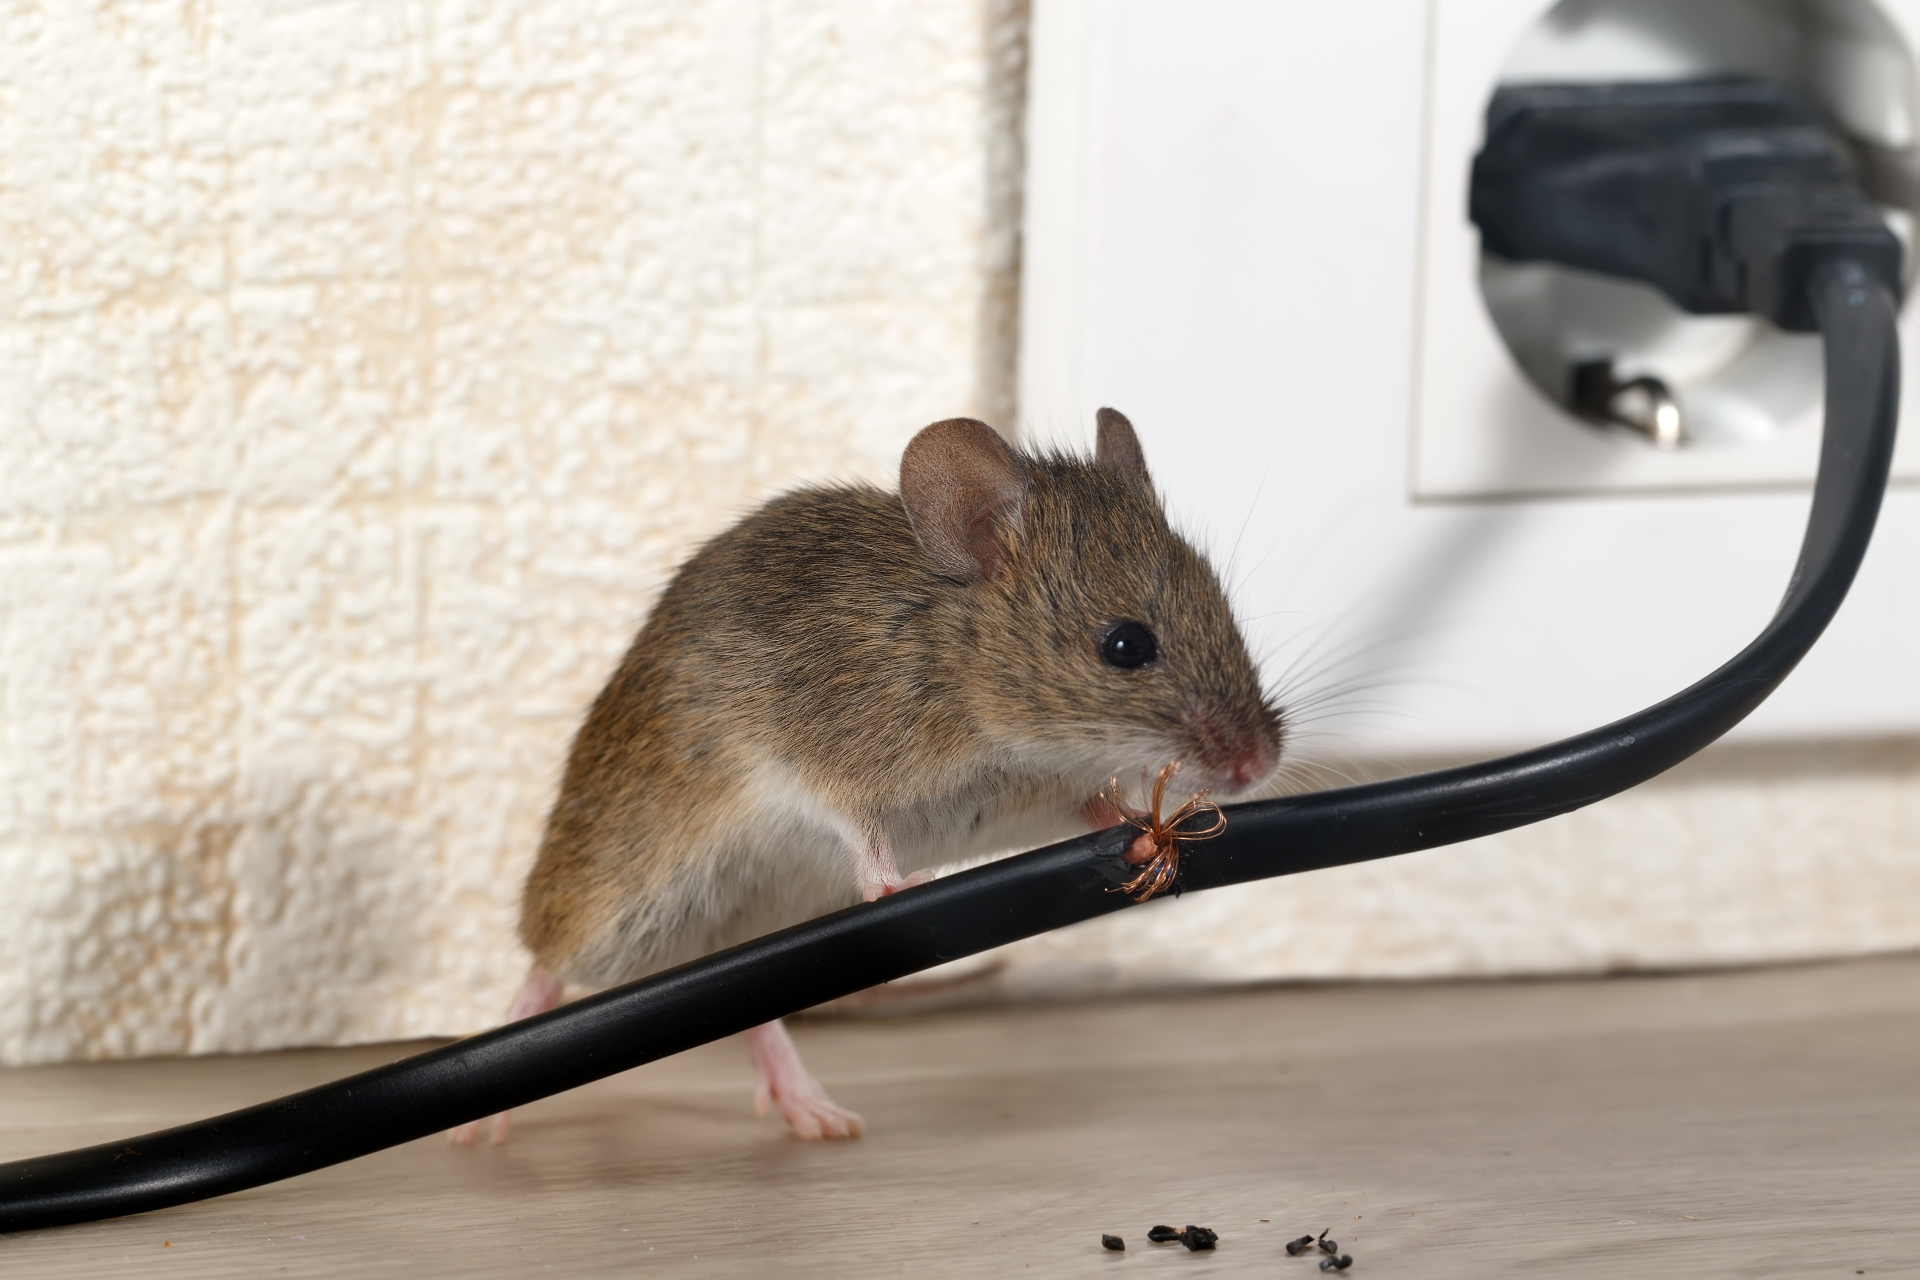 Mice Infestation, Pest Control in Harefield, Denham, UB9. Call Now 020 8166 9746